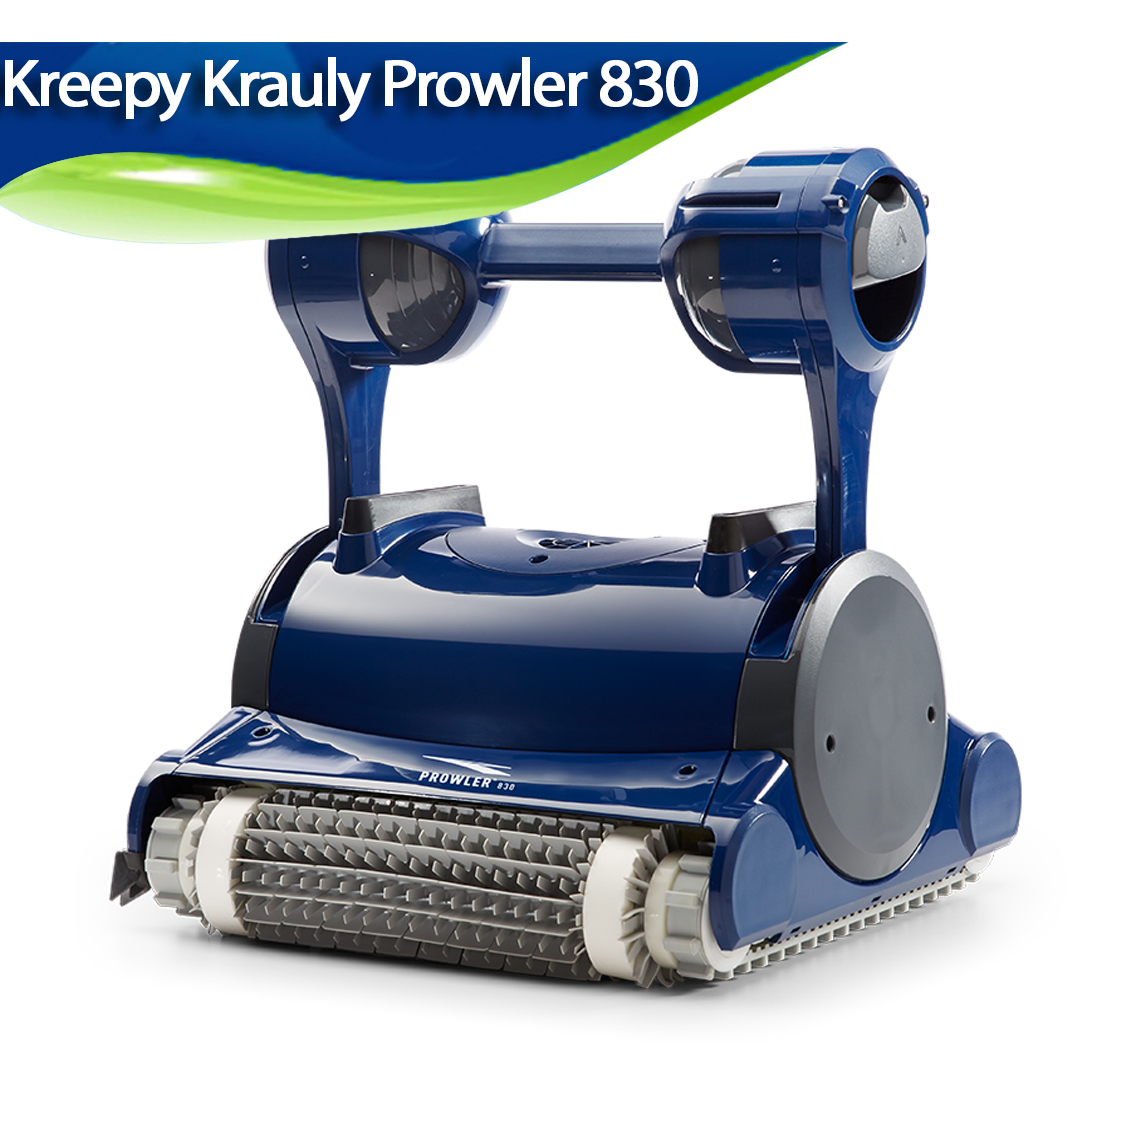 Kreepy Krauly Prowler 830 Review Best Robotic Pool Cleaners